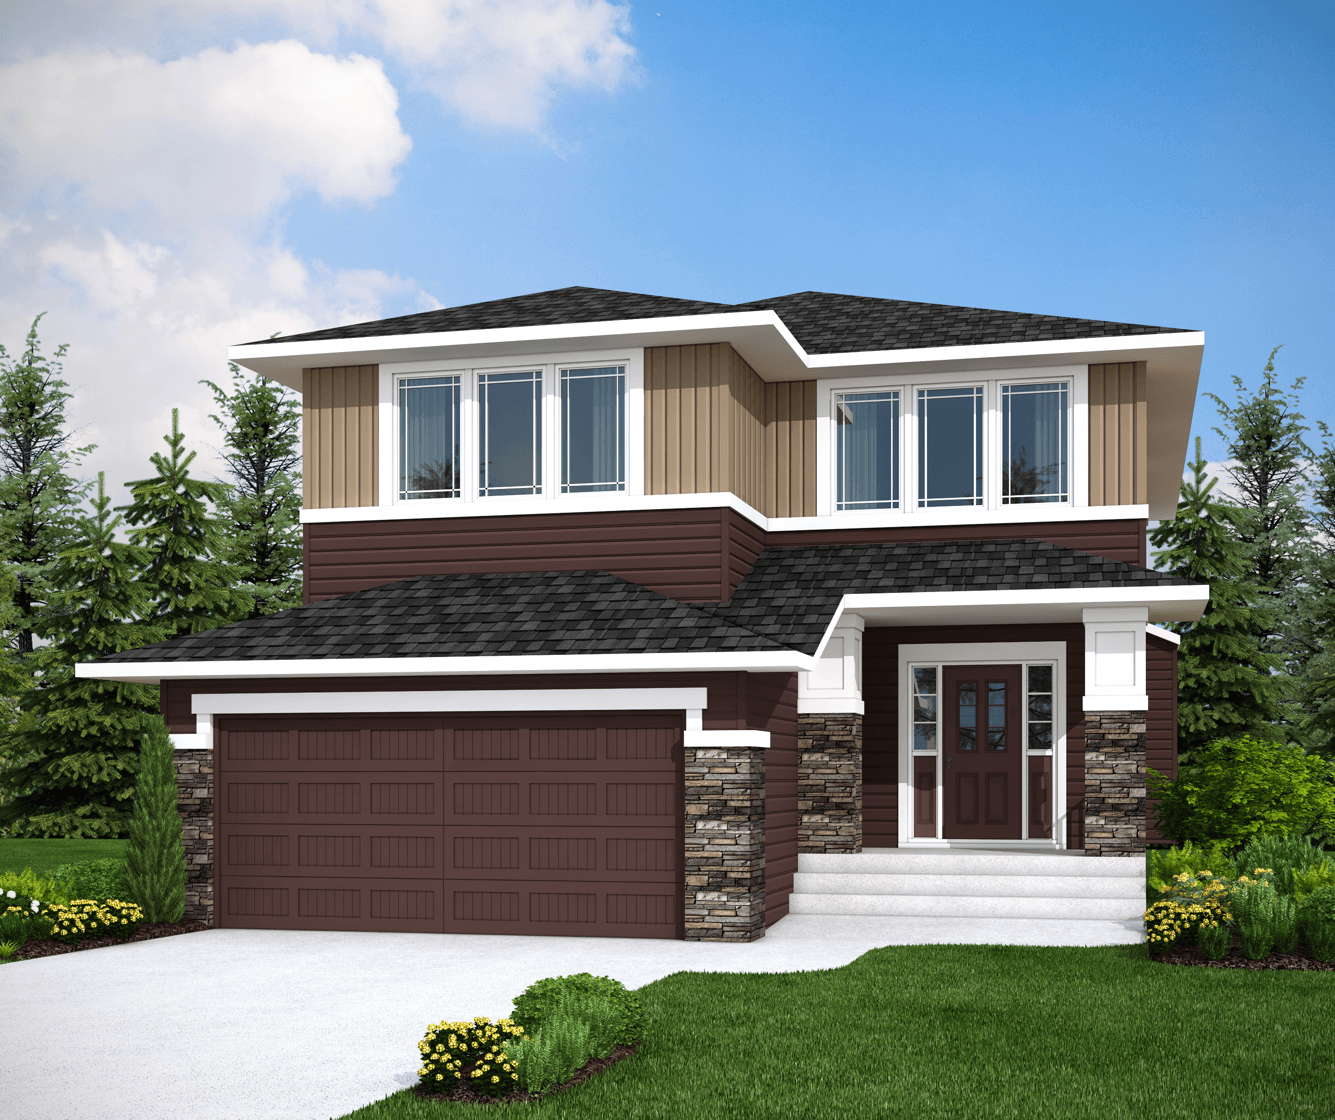 A Look At Your Home Elevation Options Baines Exterior Image